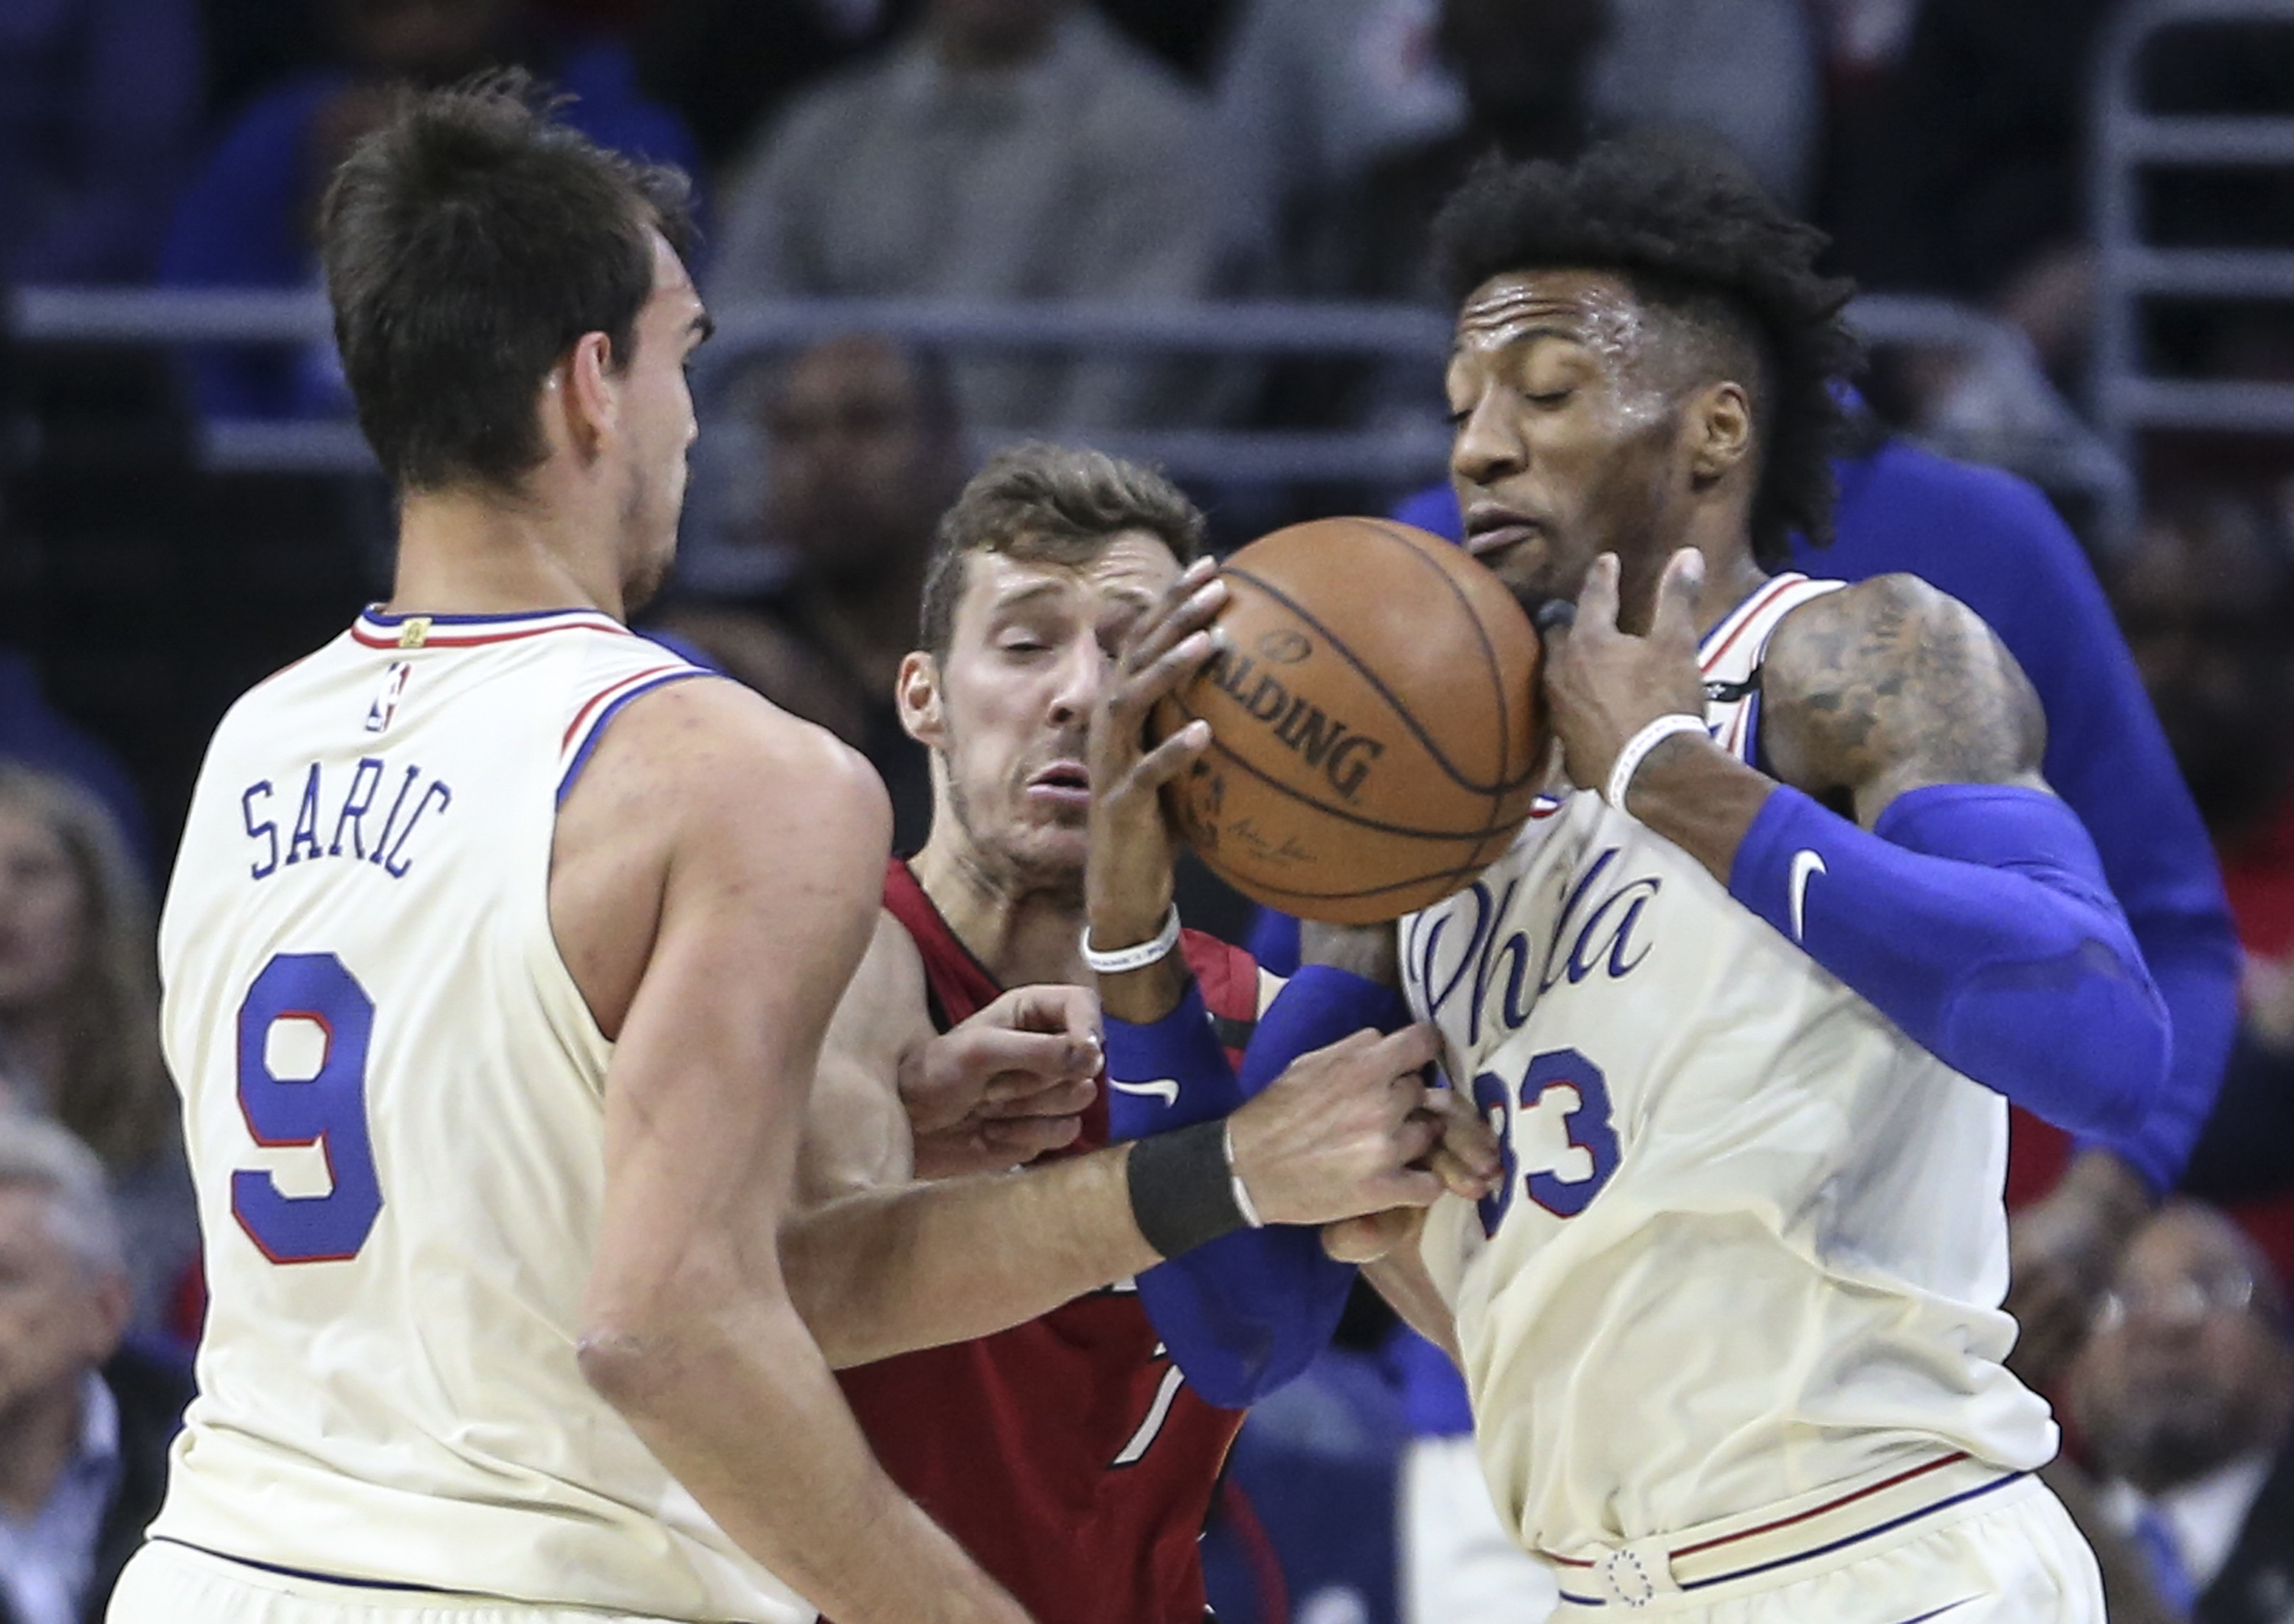 Sixers´ Dario Saric and Robert Covington keep the ball from the Heat´s Goran Dragic during the 1st quarter of Game 2 of the 2018 Playoffs at the Wells Fargo Center in Philadelphia, Monday, April 16, 2018. STEVEN M. FALK / Staff Photographer